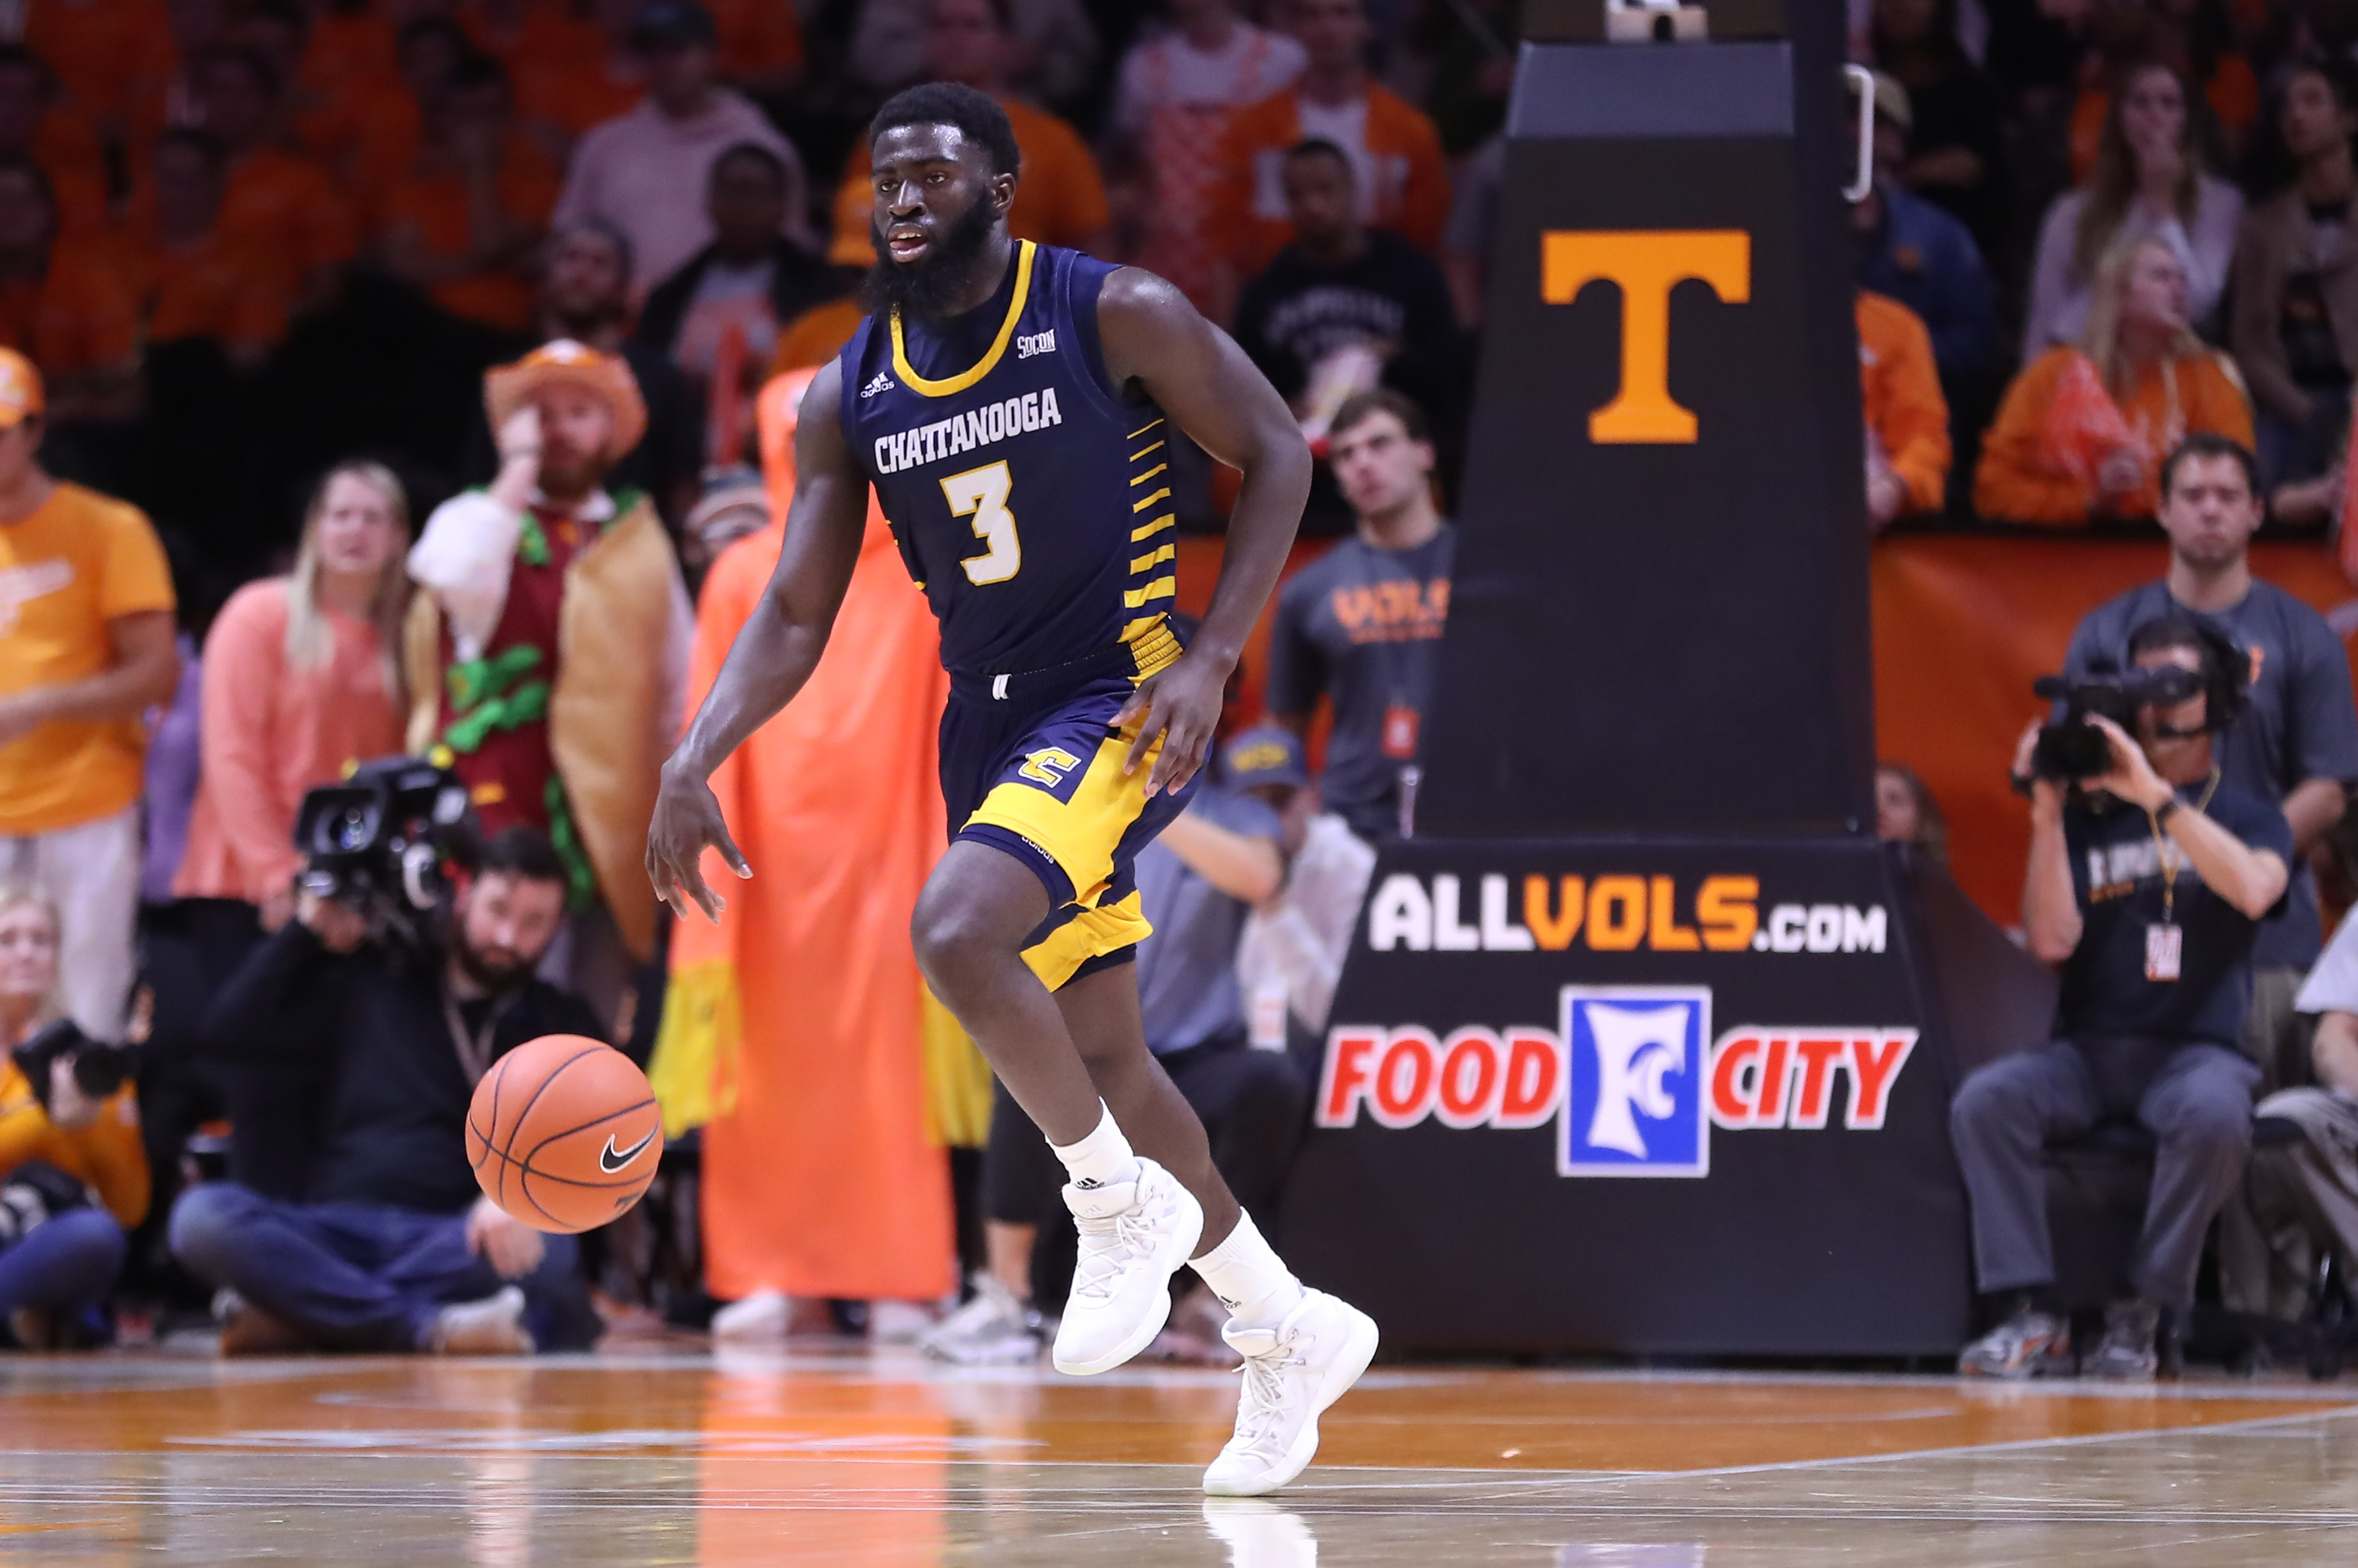 COLLEGE BASKETBALL: NOV 25 UT-Chattanooga at Tennessee